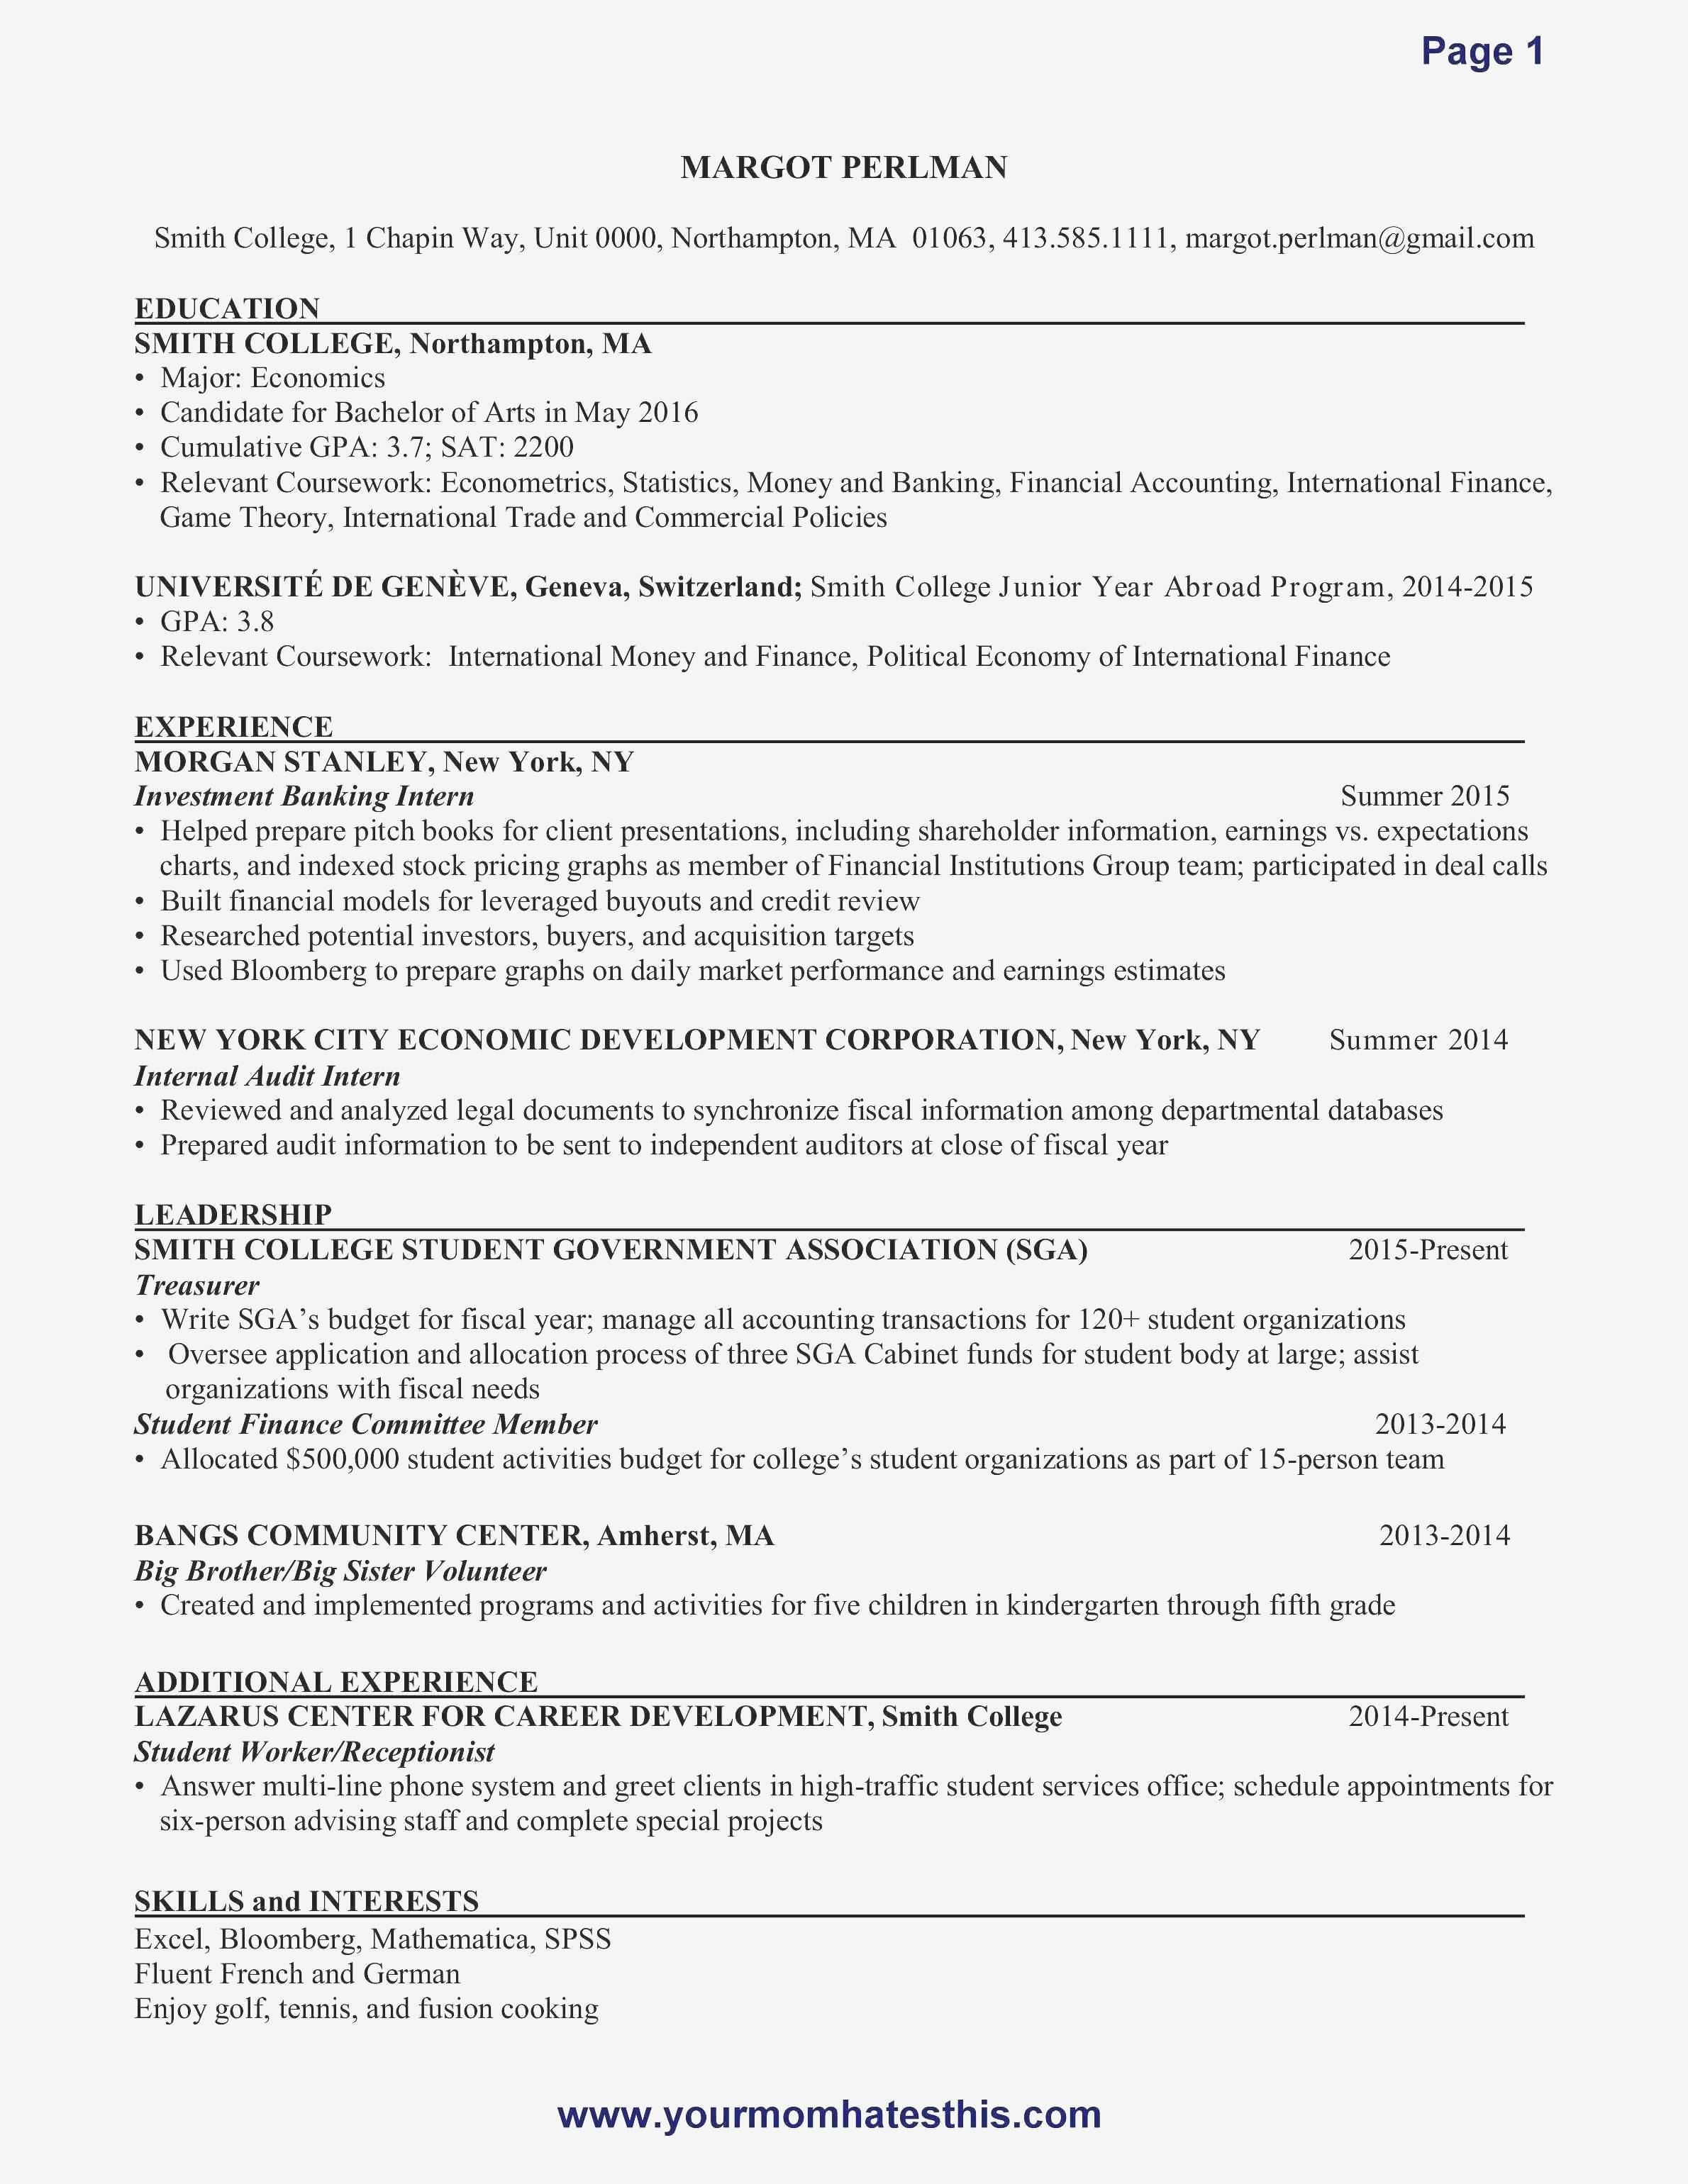 Physical Therapy Resume Template